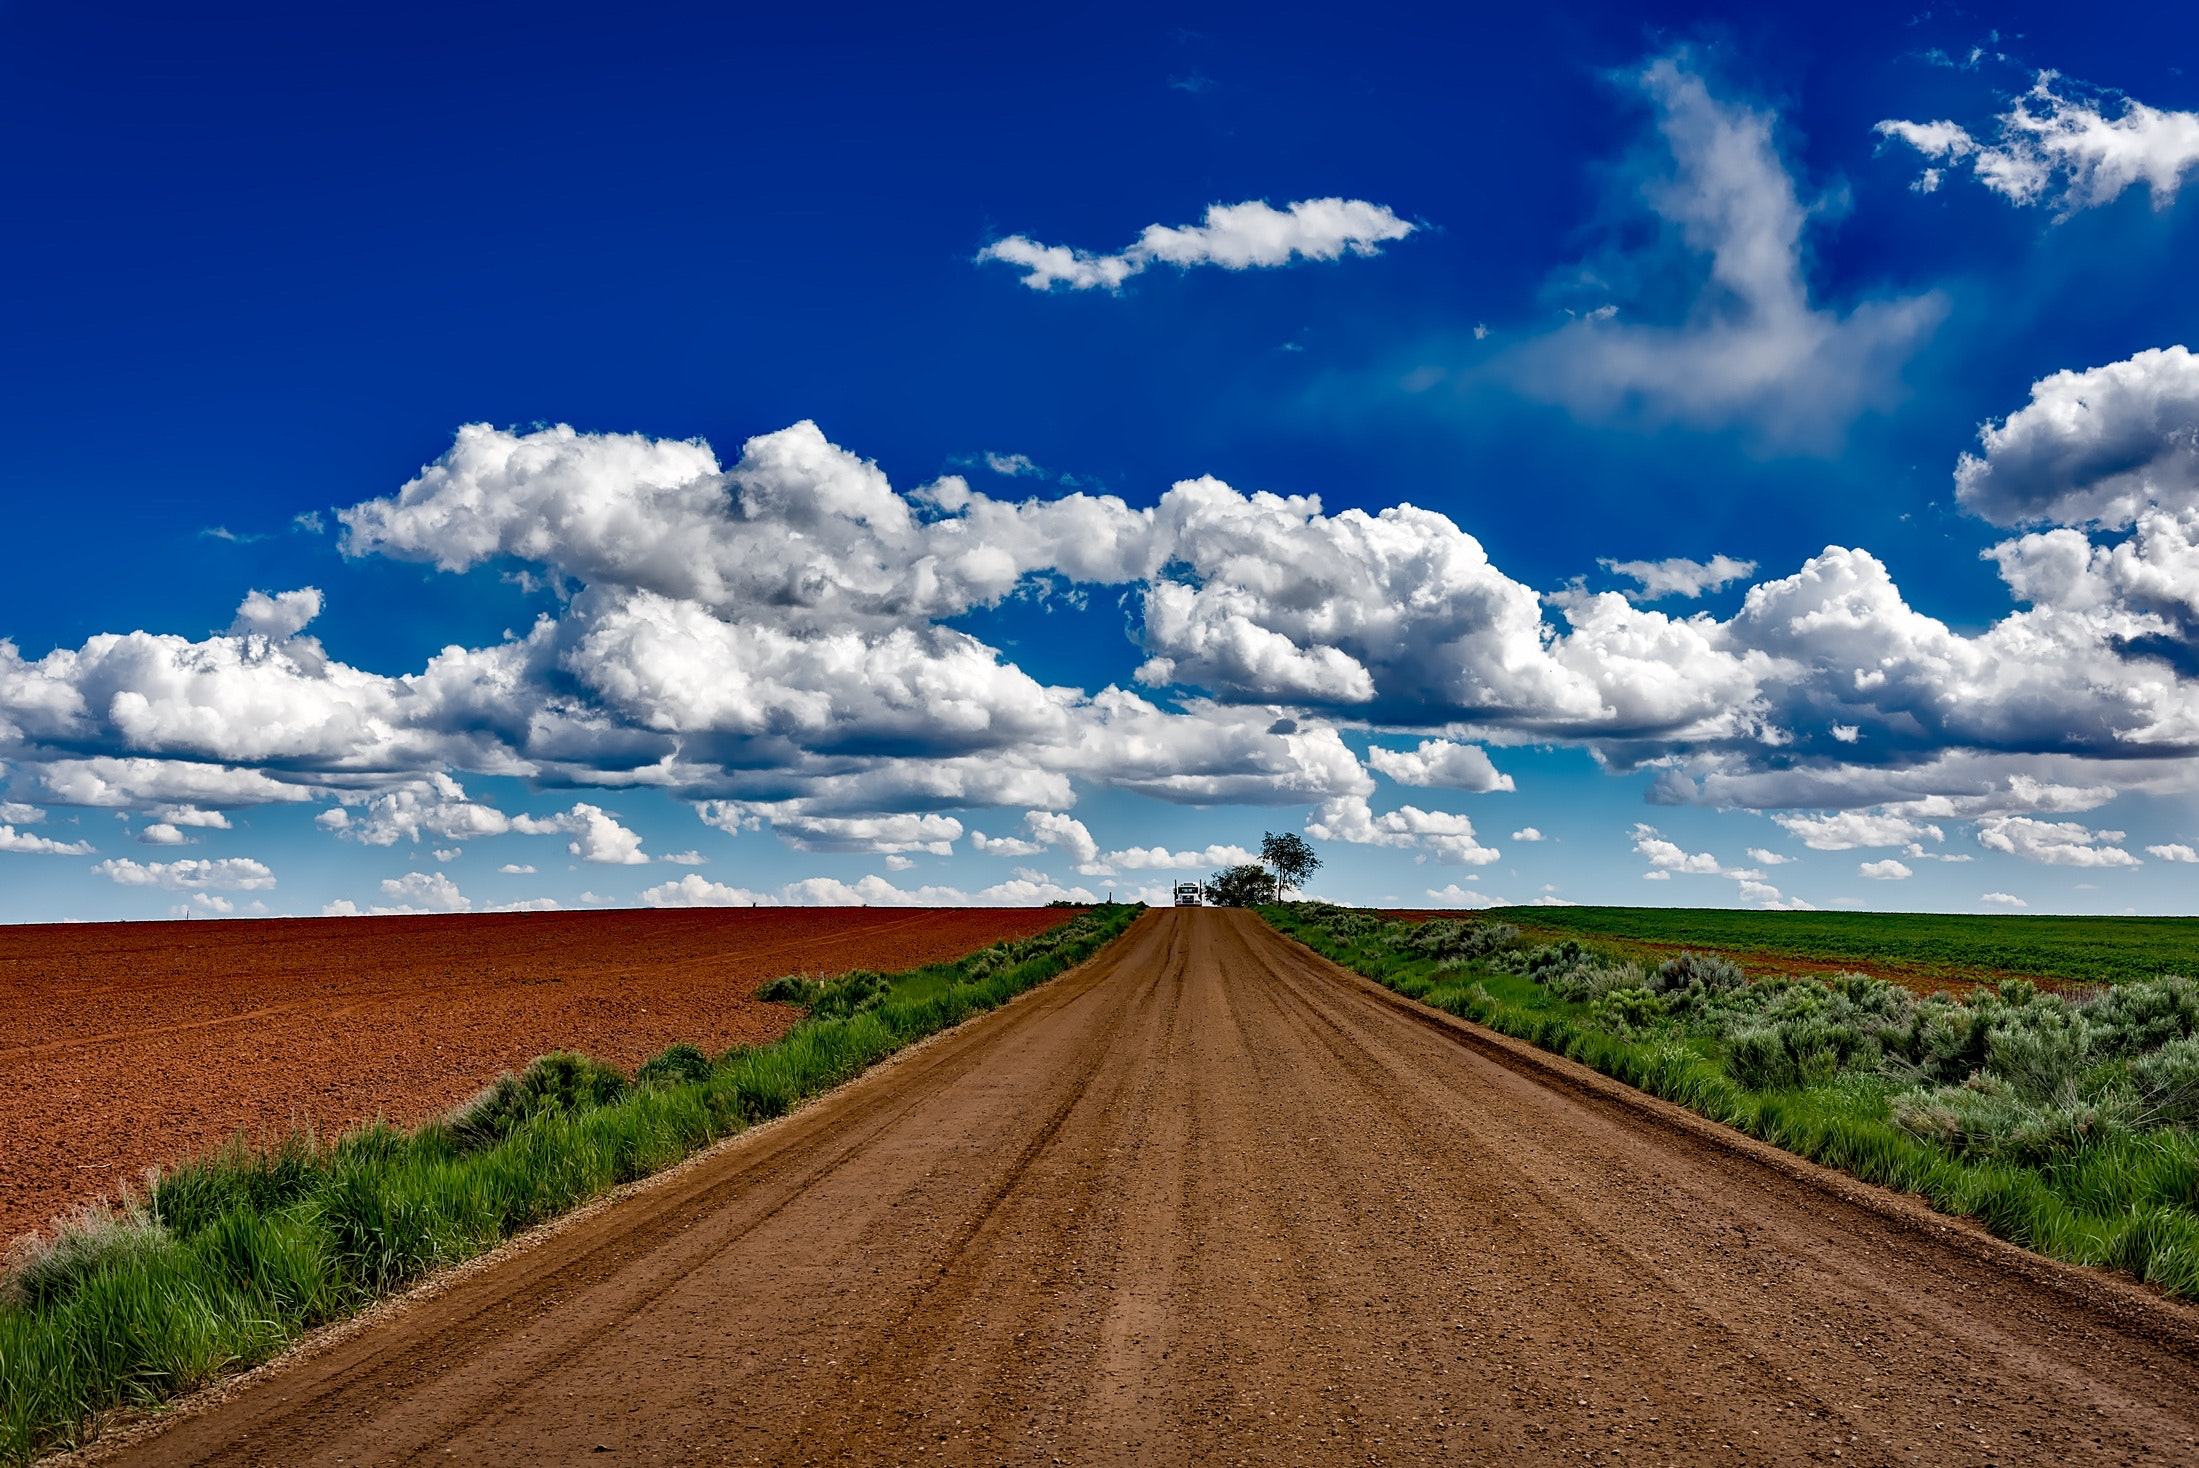 Gray Soil Road Near Field during Daytime Photo, Clouds, Countryside, Dirt road, Farm, HQ Photo